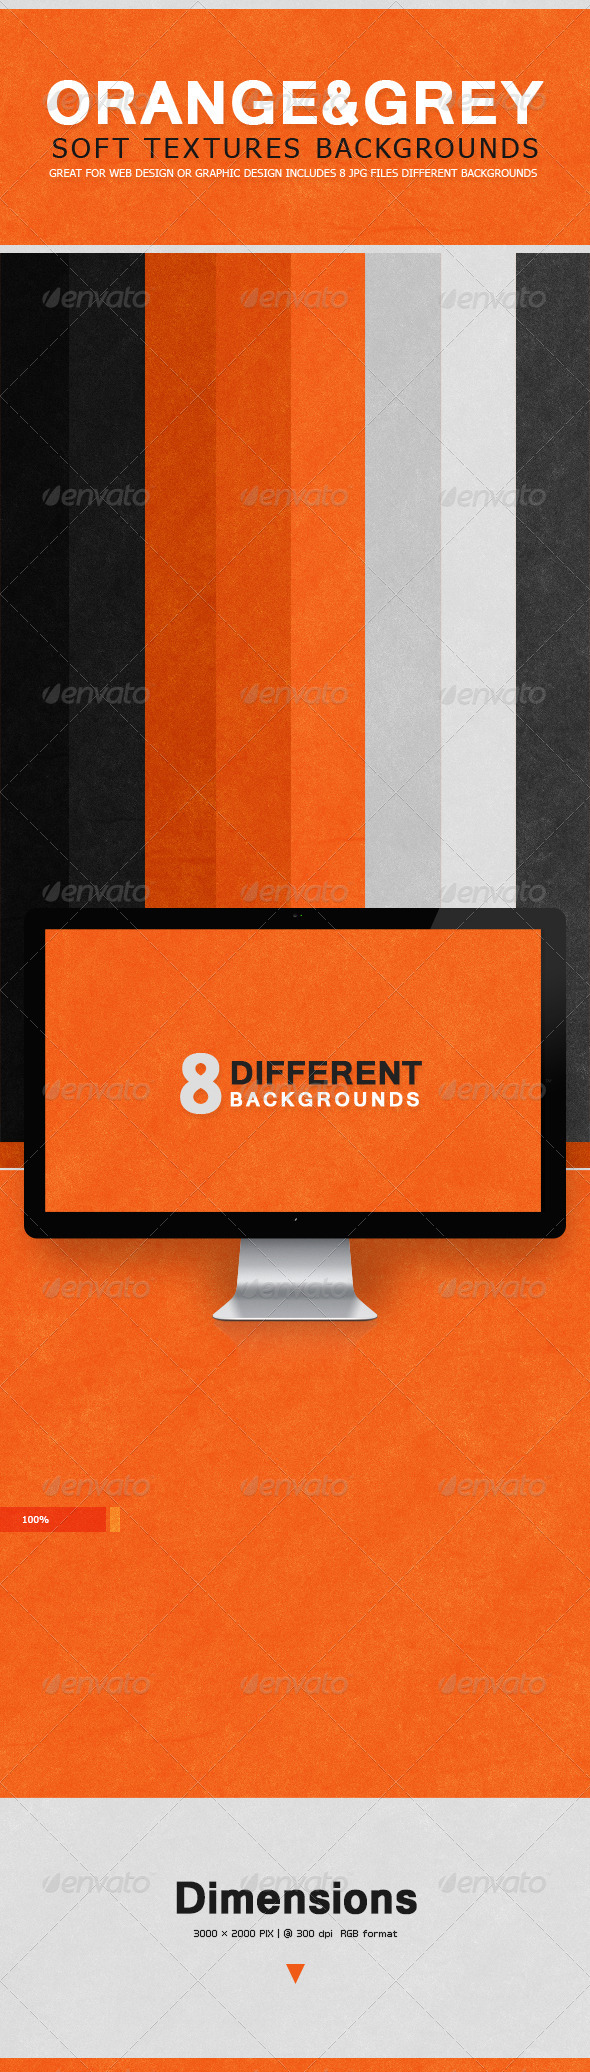 GraphicRiver Soft Textures Backgrounds Orange & Grey 7609825